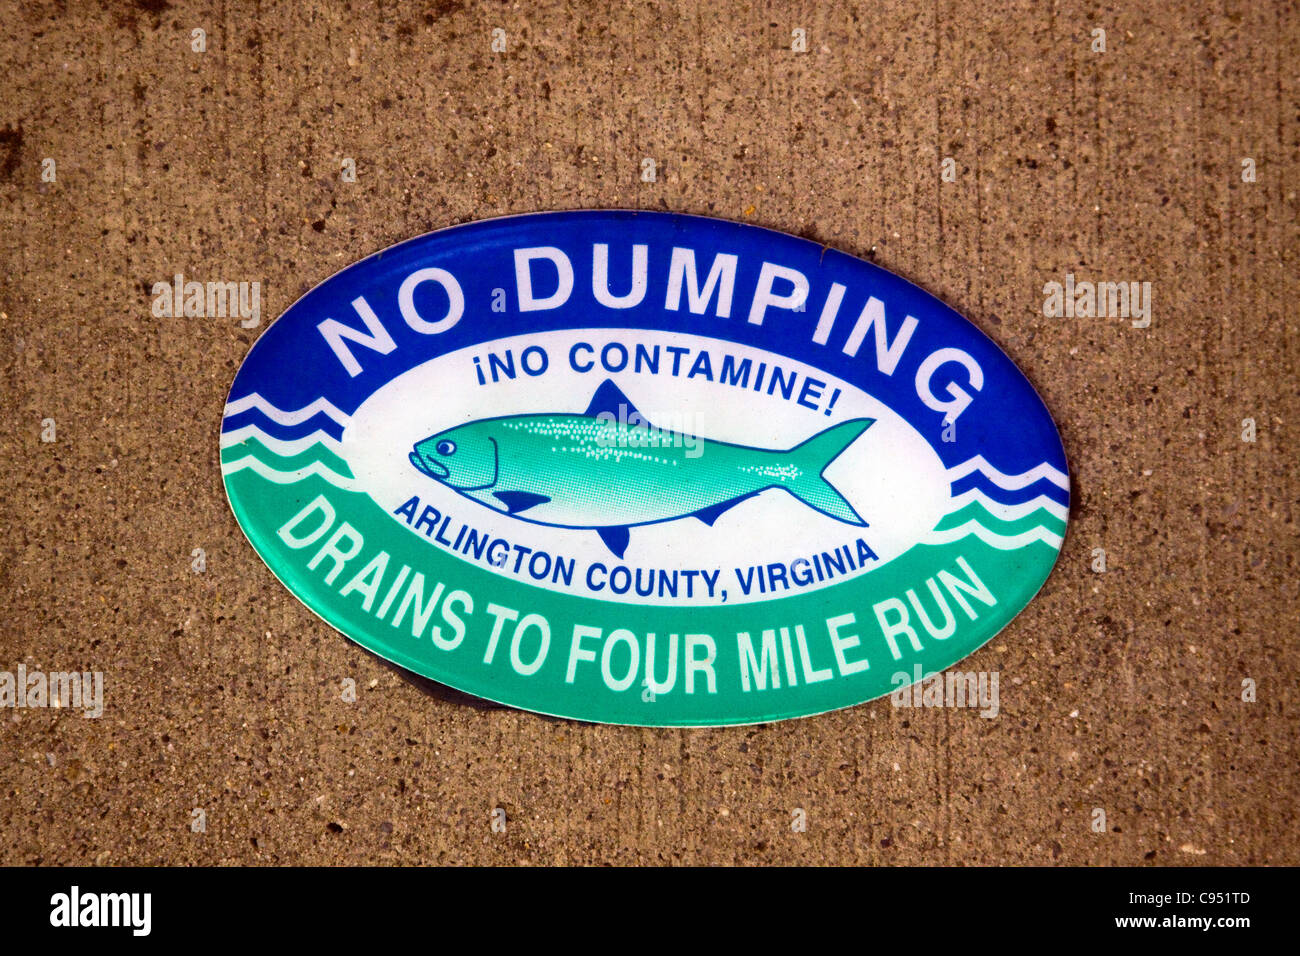 Arlington County and City of Alexandria Virginia No Dumping Drains to Four Mile Run sign on top of a storm water - Stock Image